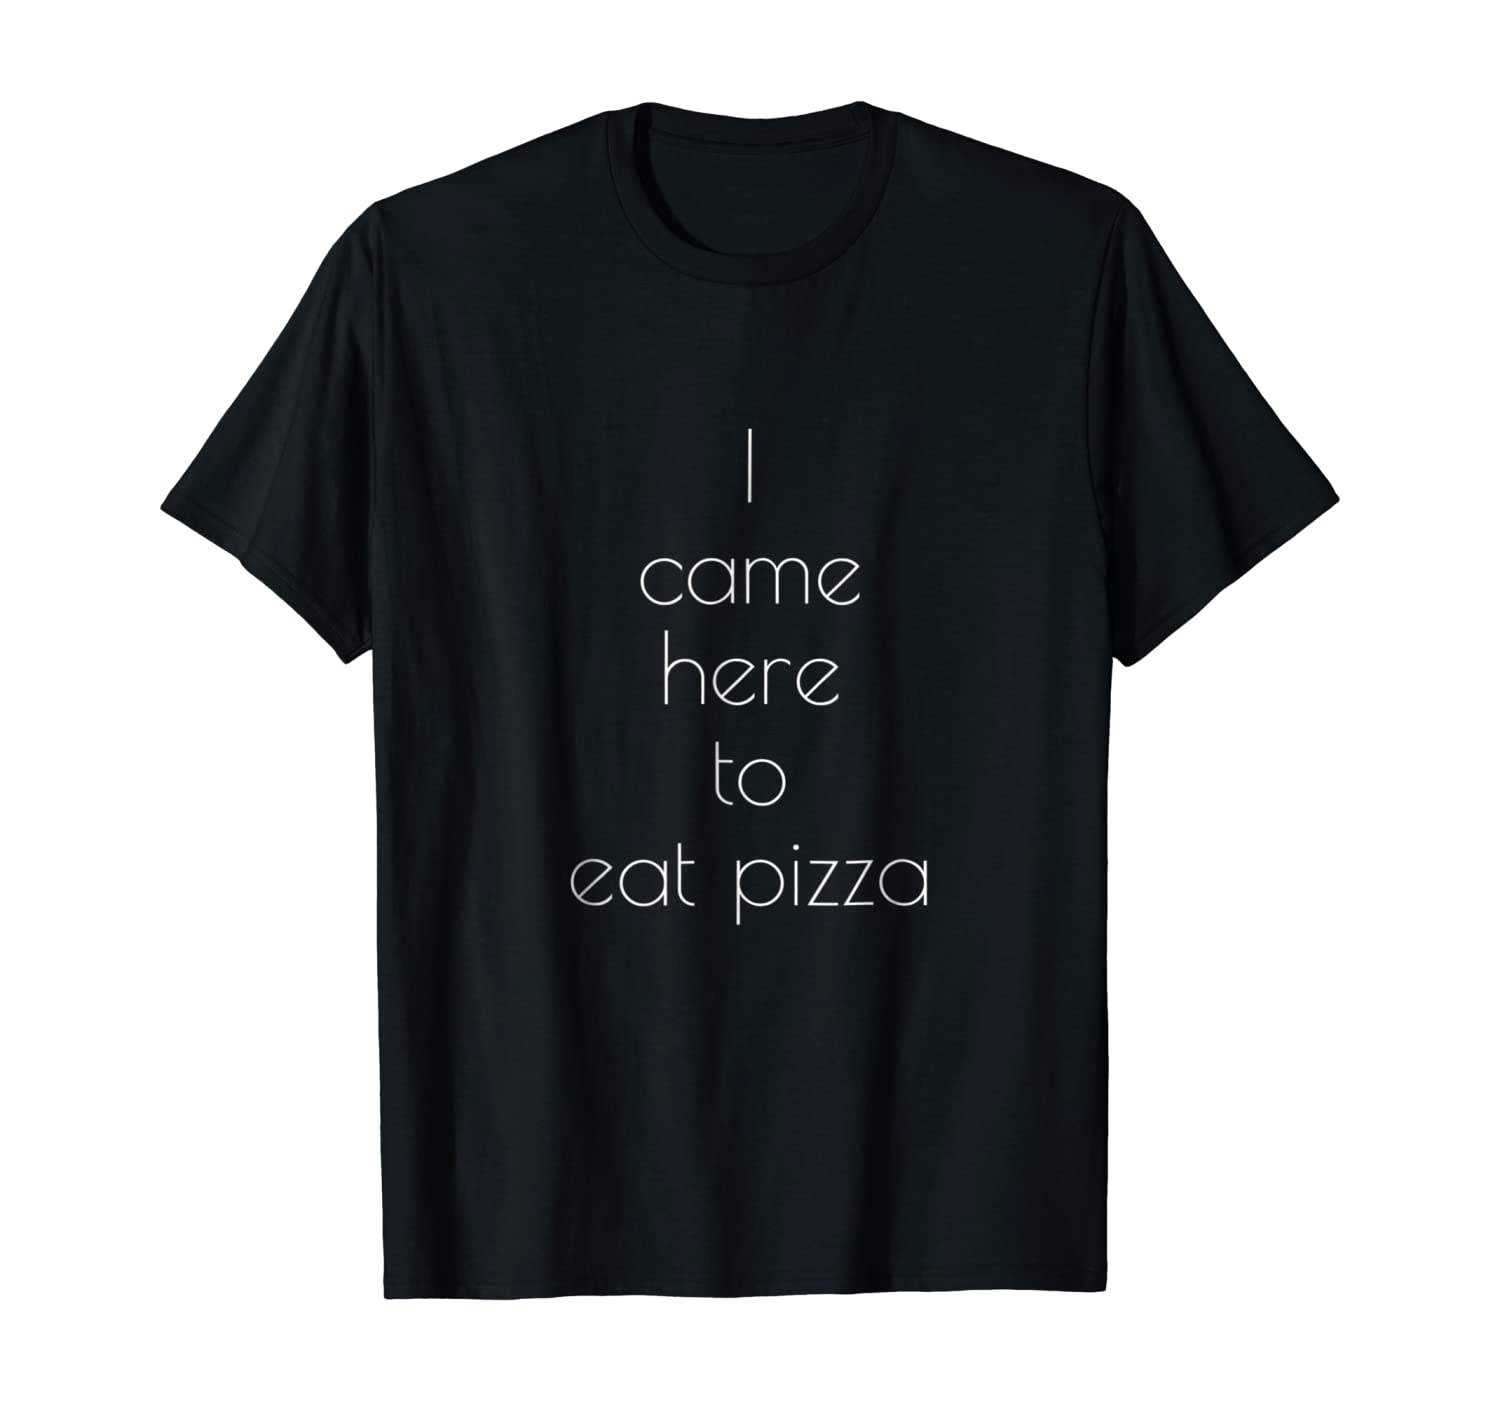 I Came Here To Eat Pizza T-shirt - Pizza Lovers Tee For All